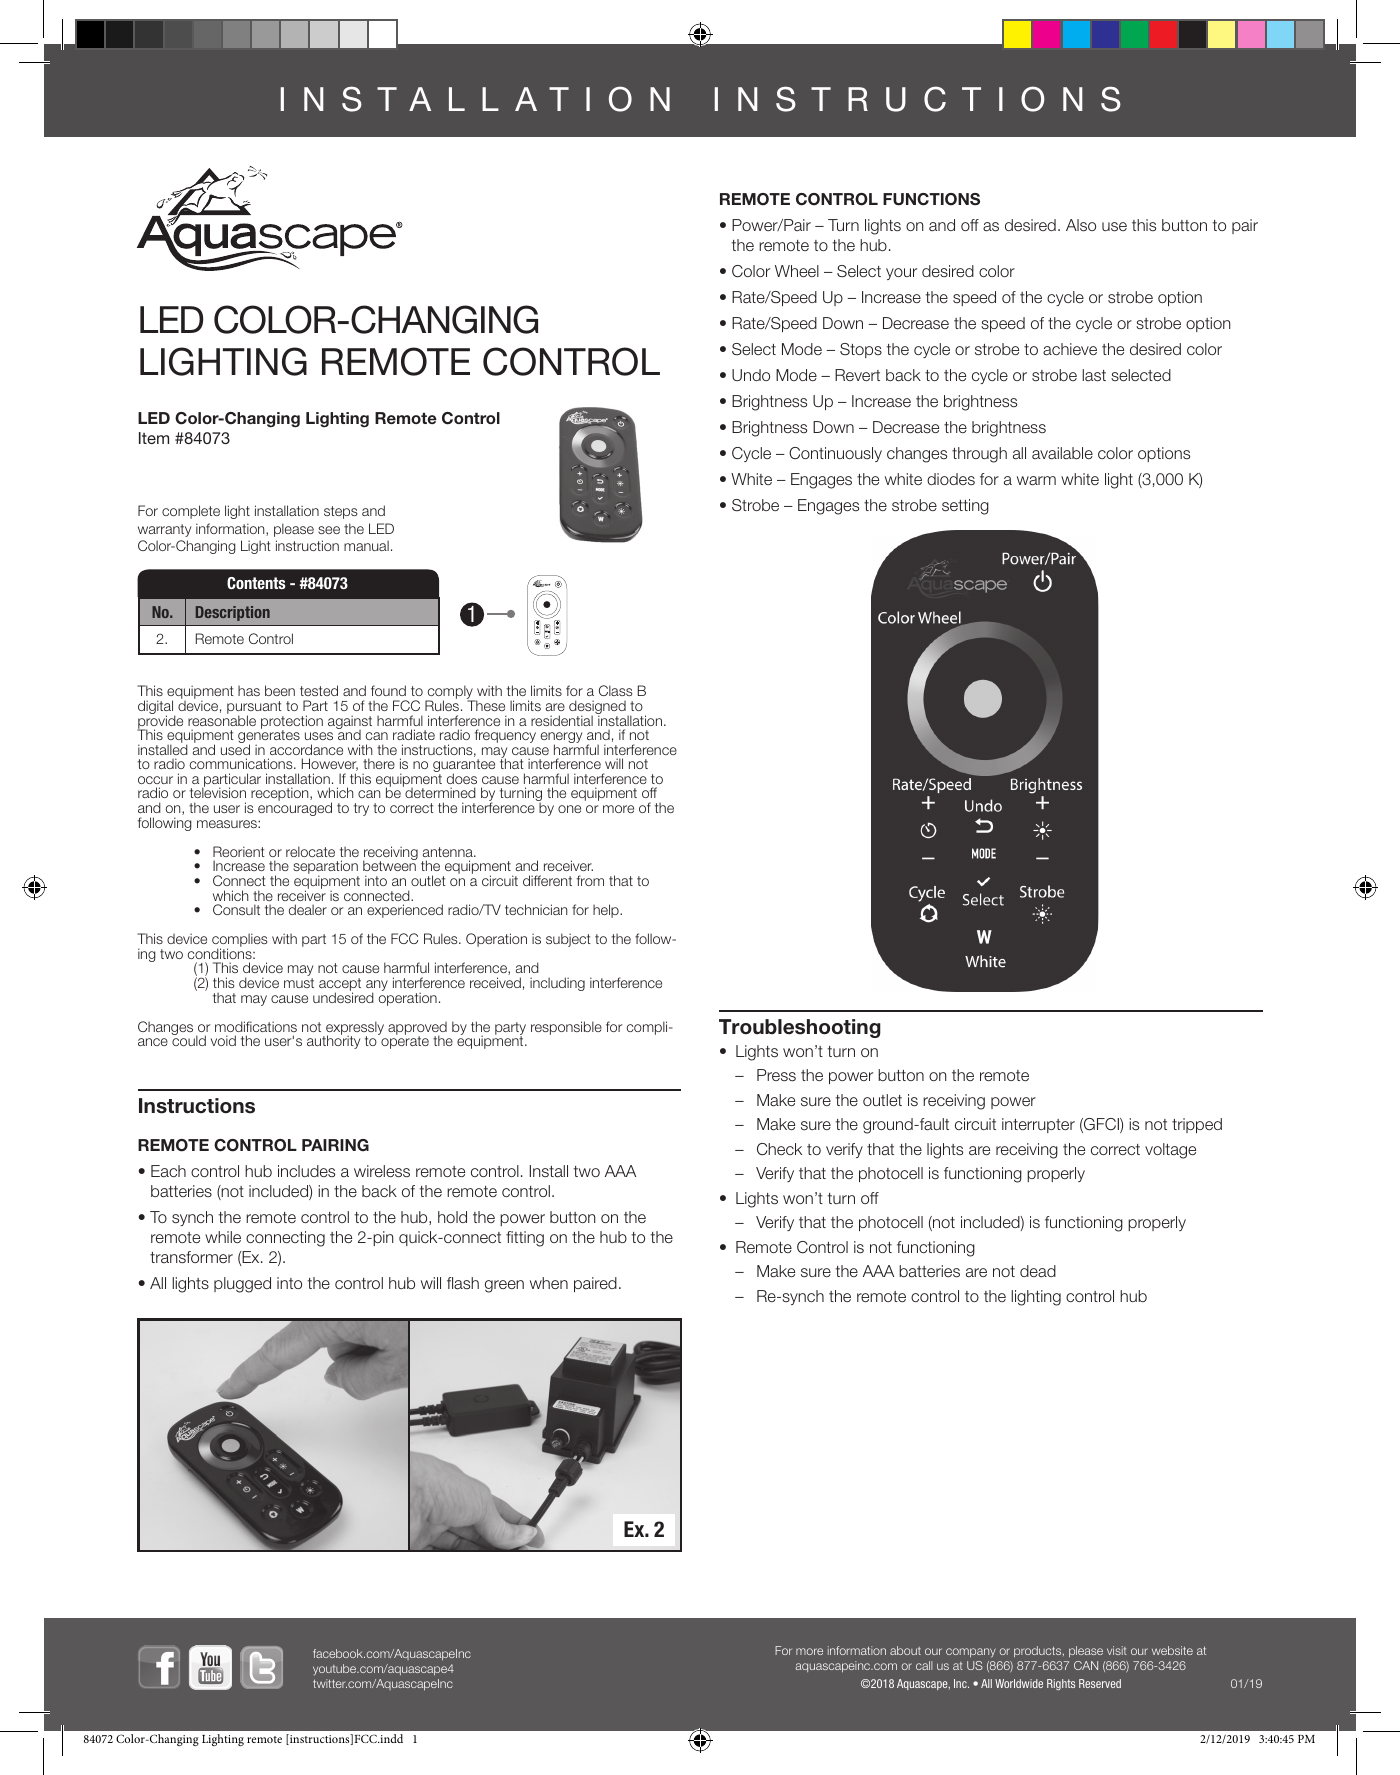 Aquascape 84073 Led Color Changing Lighting Remote Control User Manual